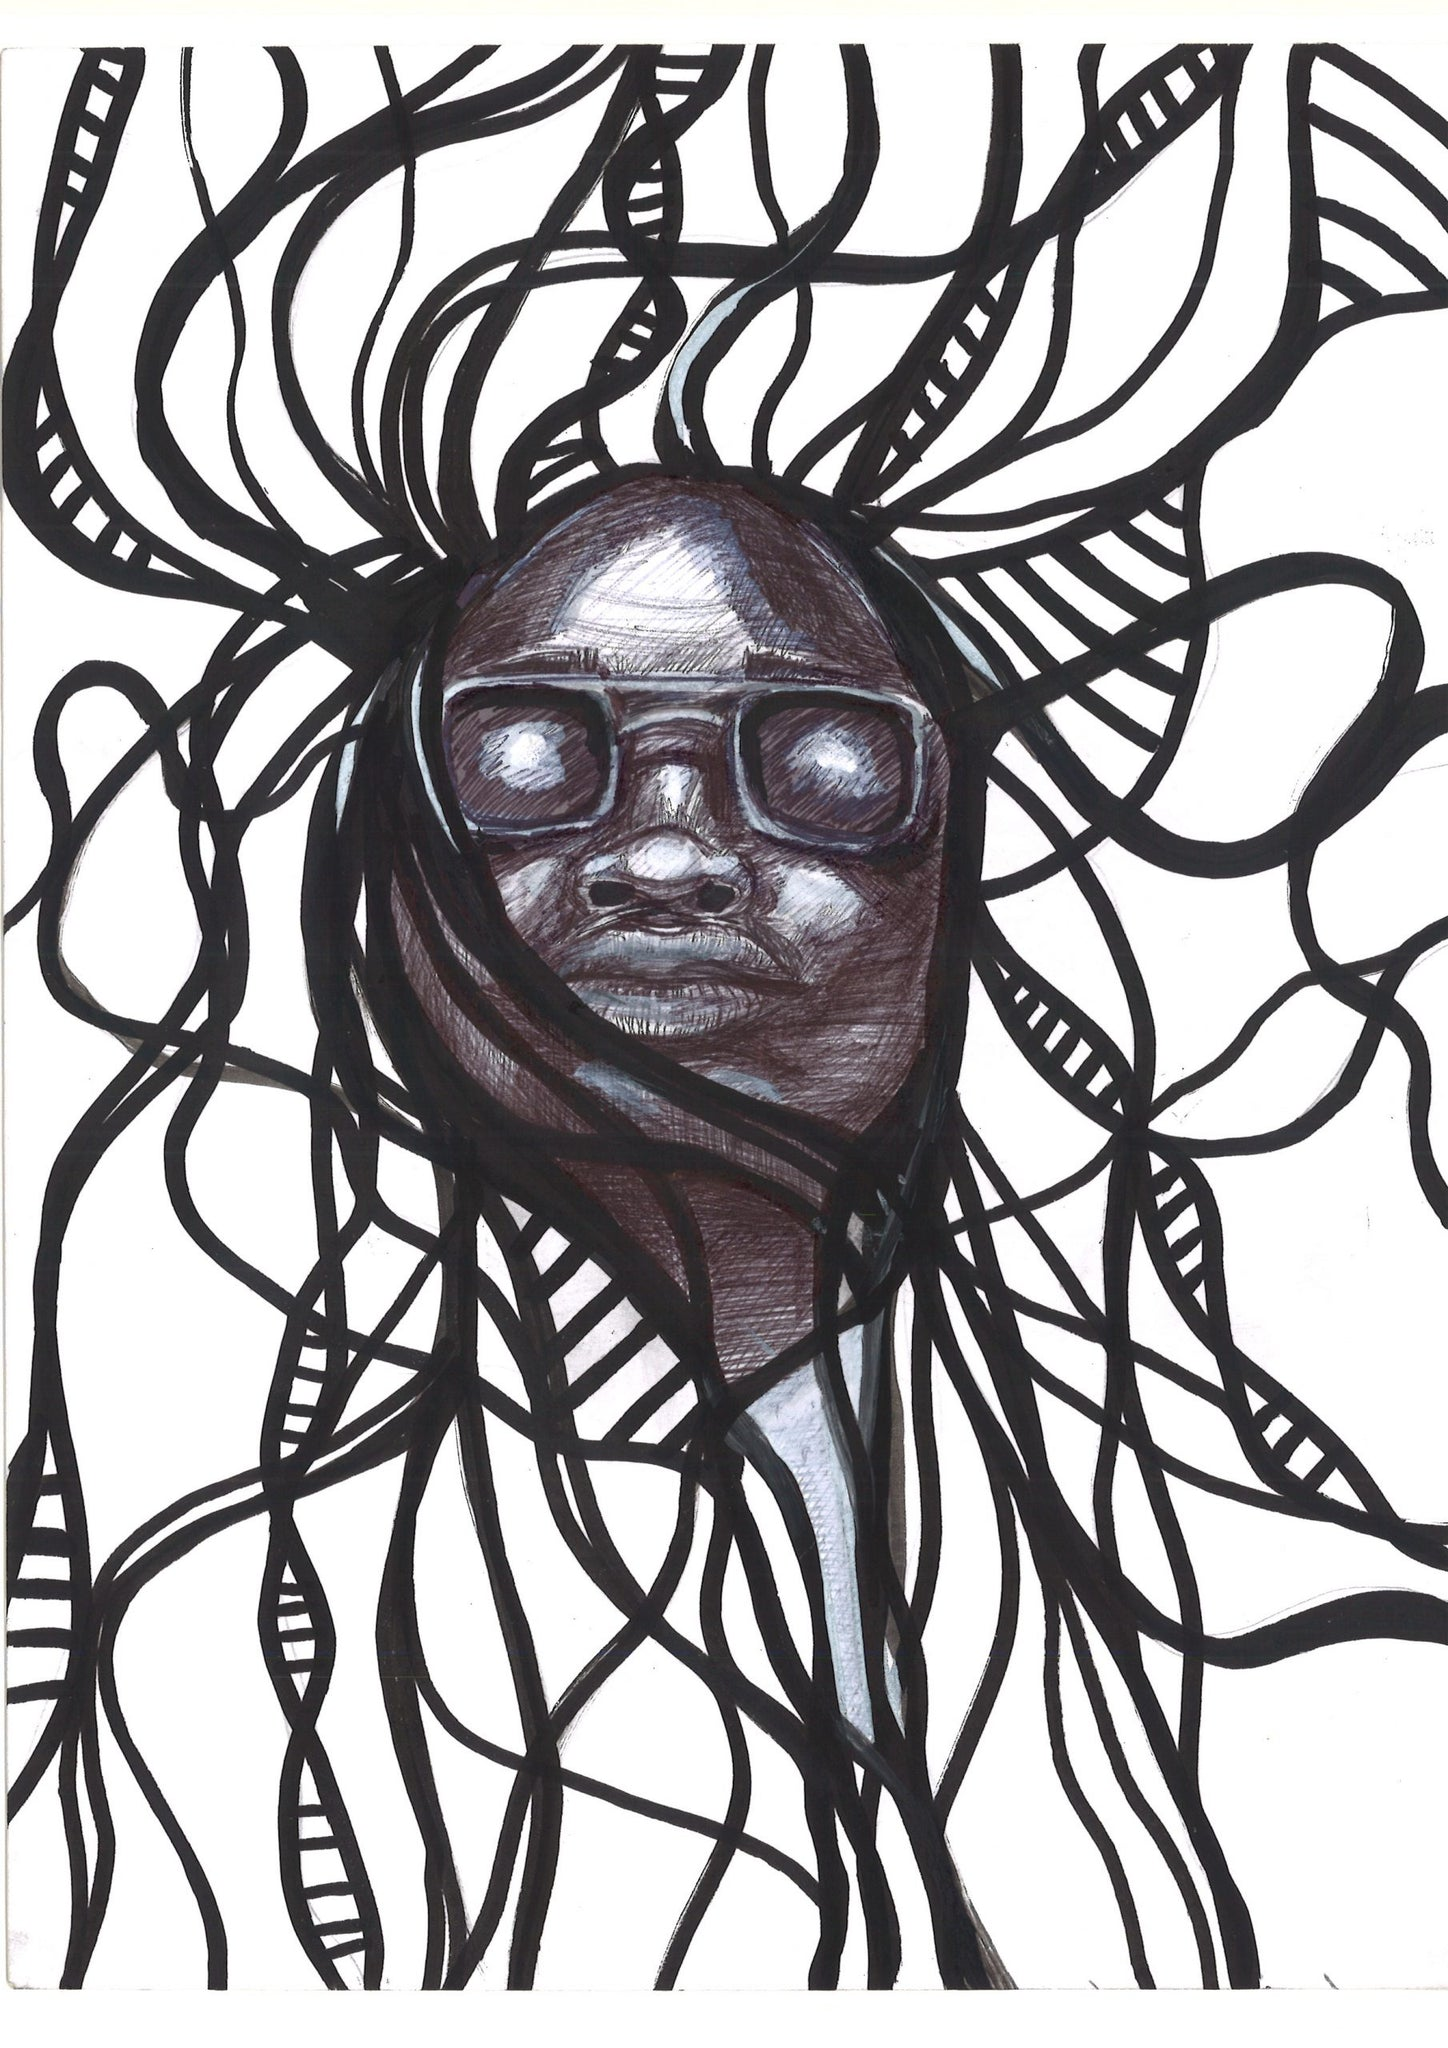 Identity ink on A4 paper by Joel Sydenham